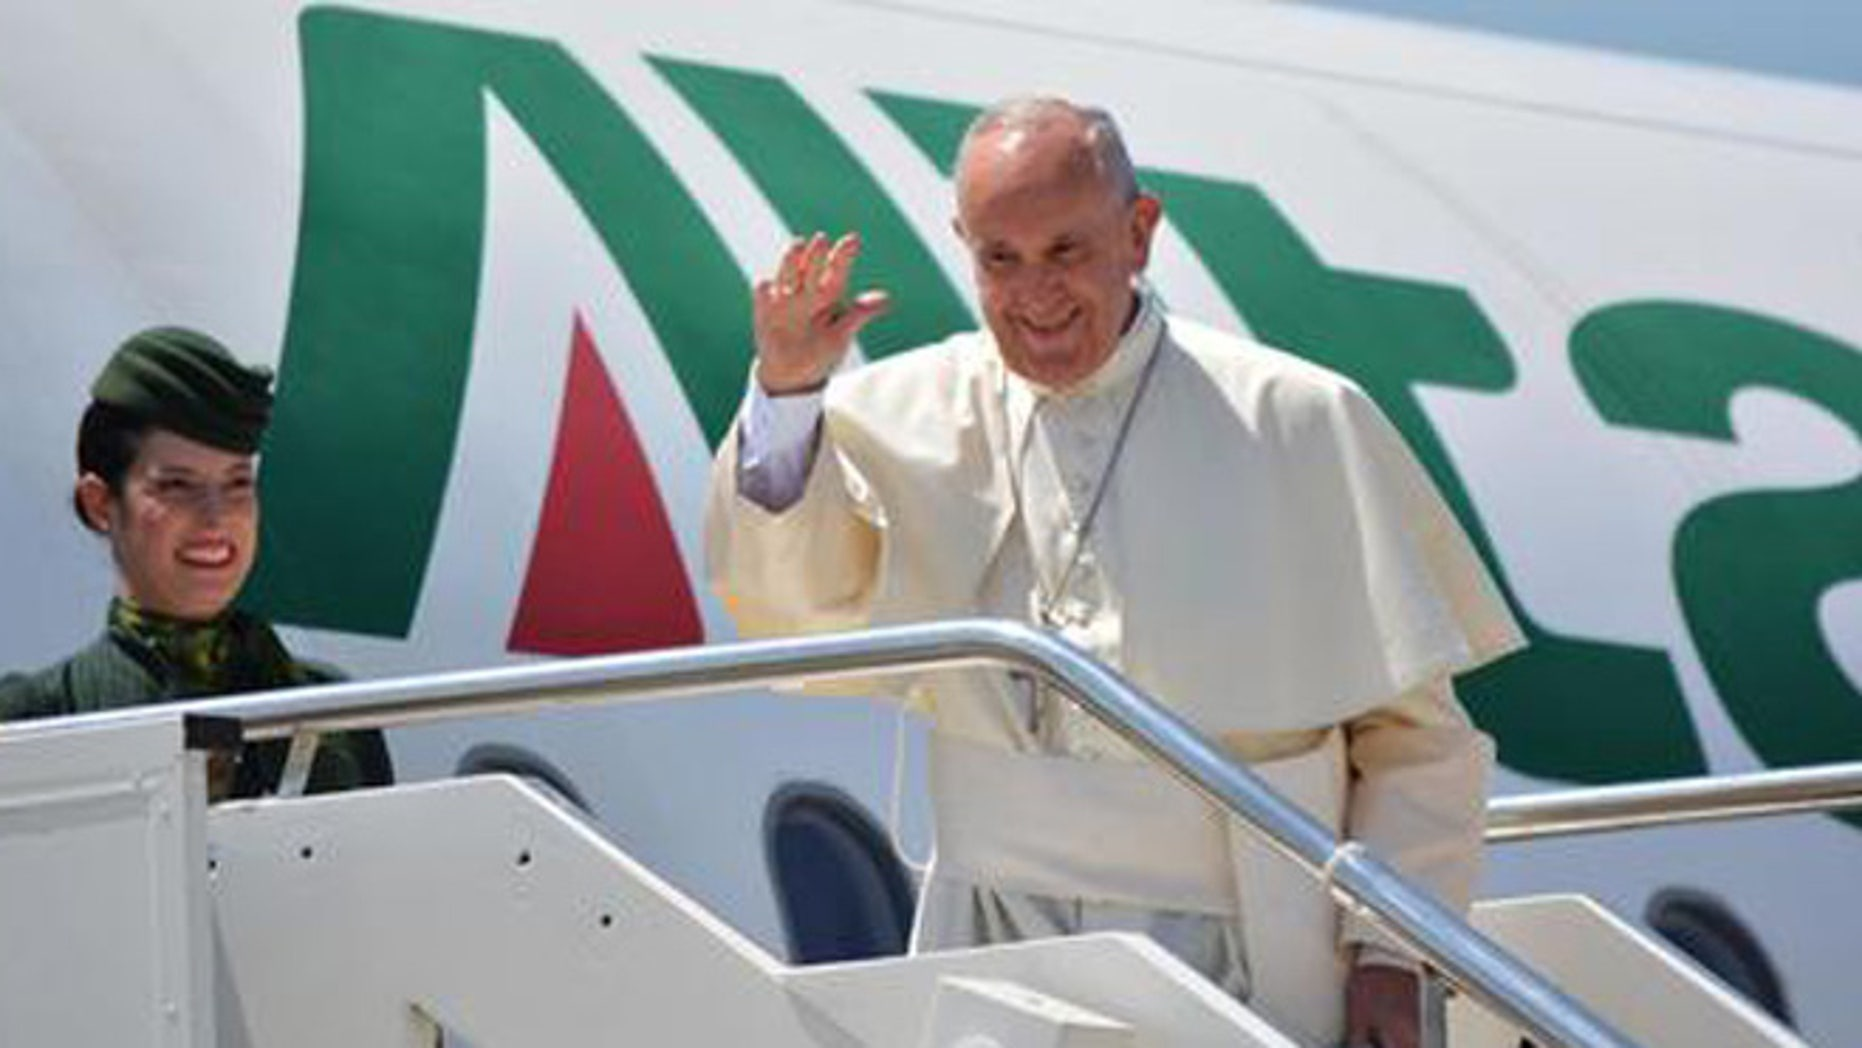 Pope Francis leaves for Poland with an Alitalia flight from the Fiumicino Airport in Rome, Wednesday, July 27, 2016. Pope Francis has departed for Krakow, where he will  join World Youth Day, a major gathering of Catholics. (Telenews/ANSA via AP Photo)